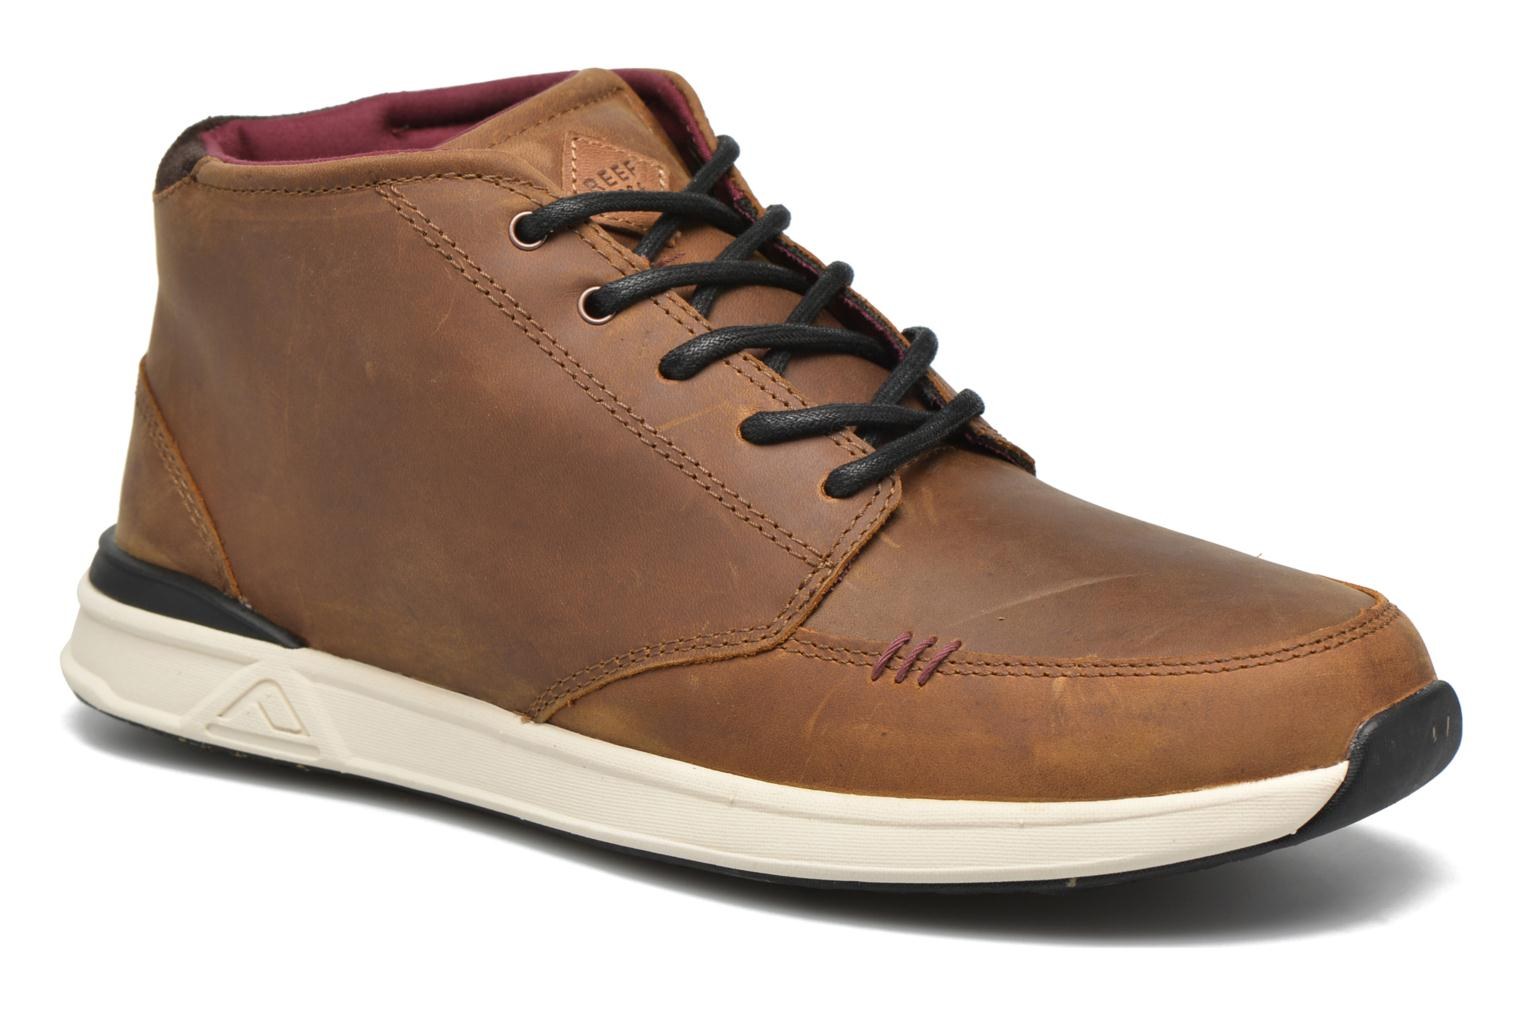 Sneakers Rover Mid FGL by Reef